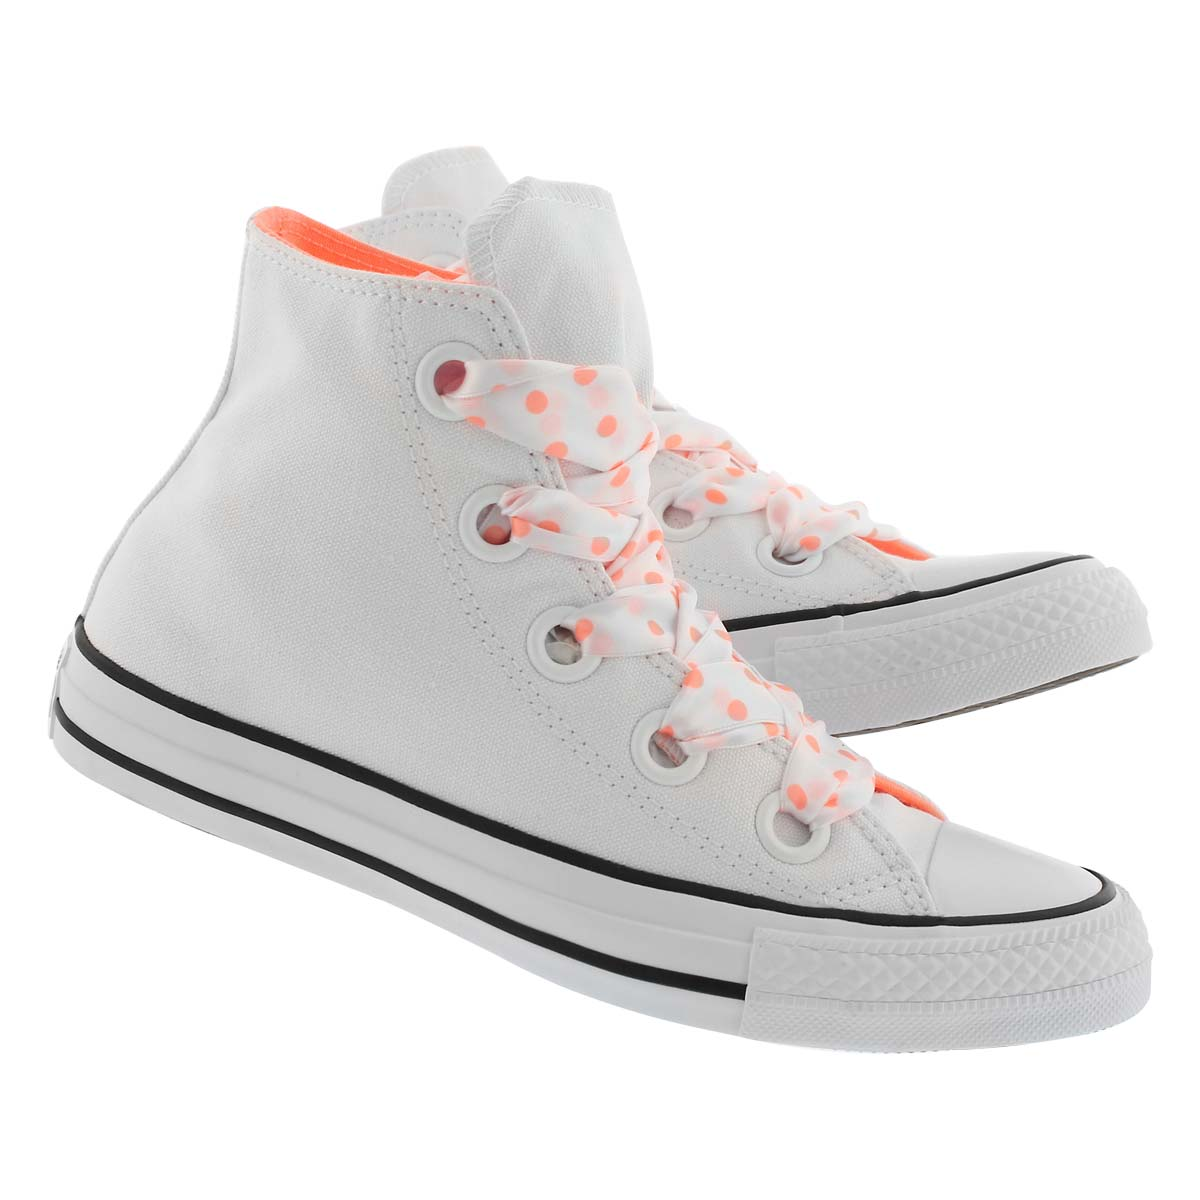 Lds CT A/S Big Eyelets wht/blk hi top